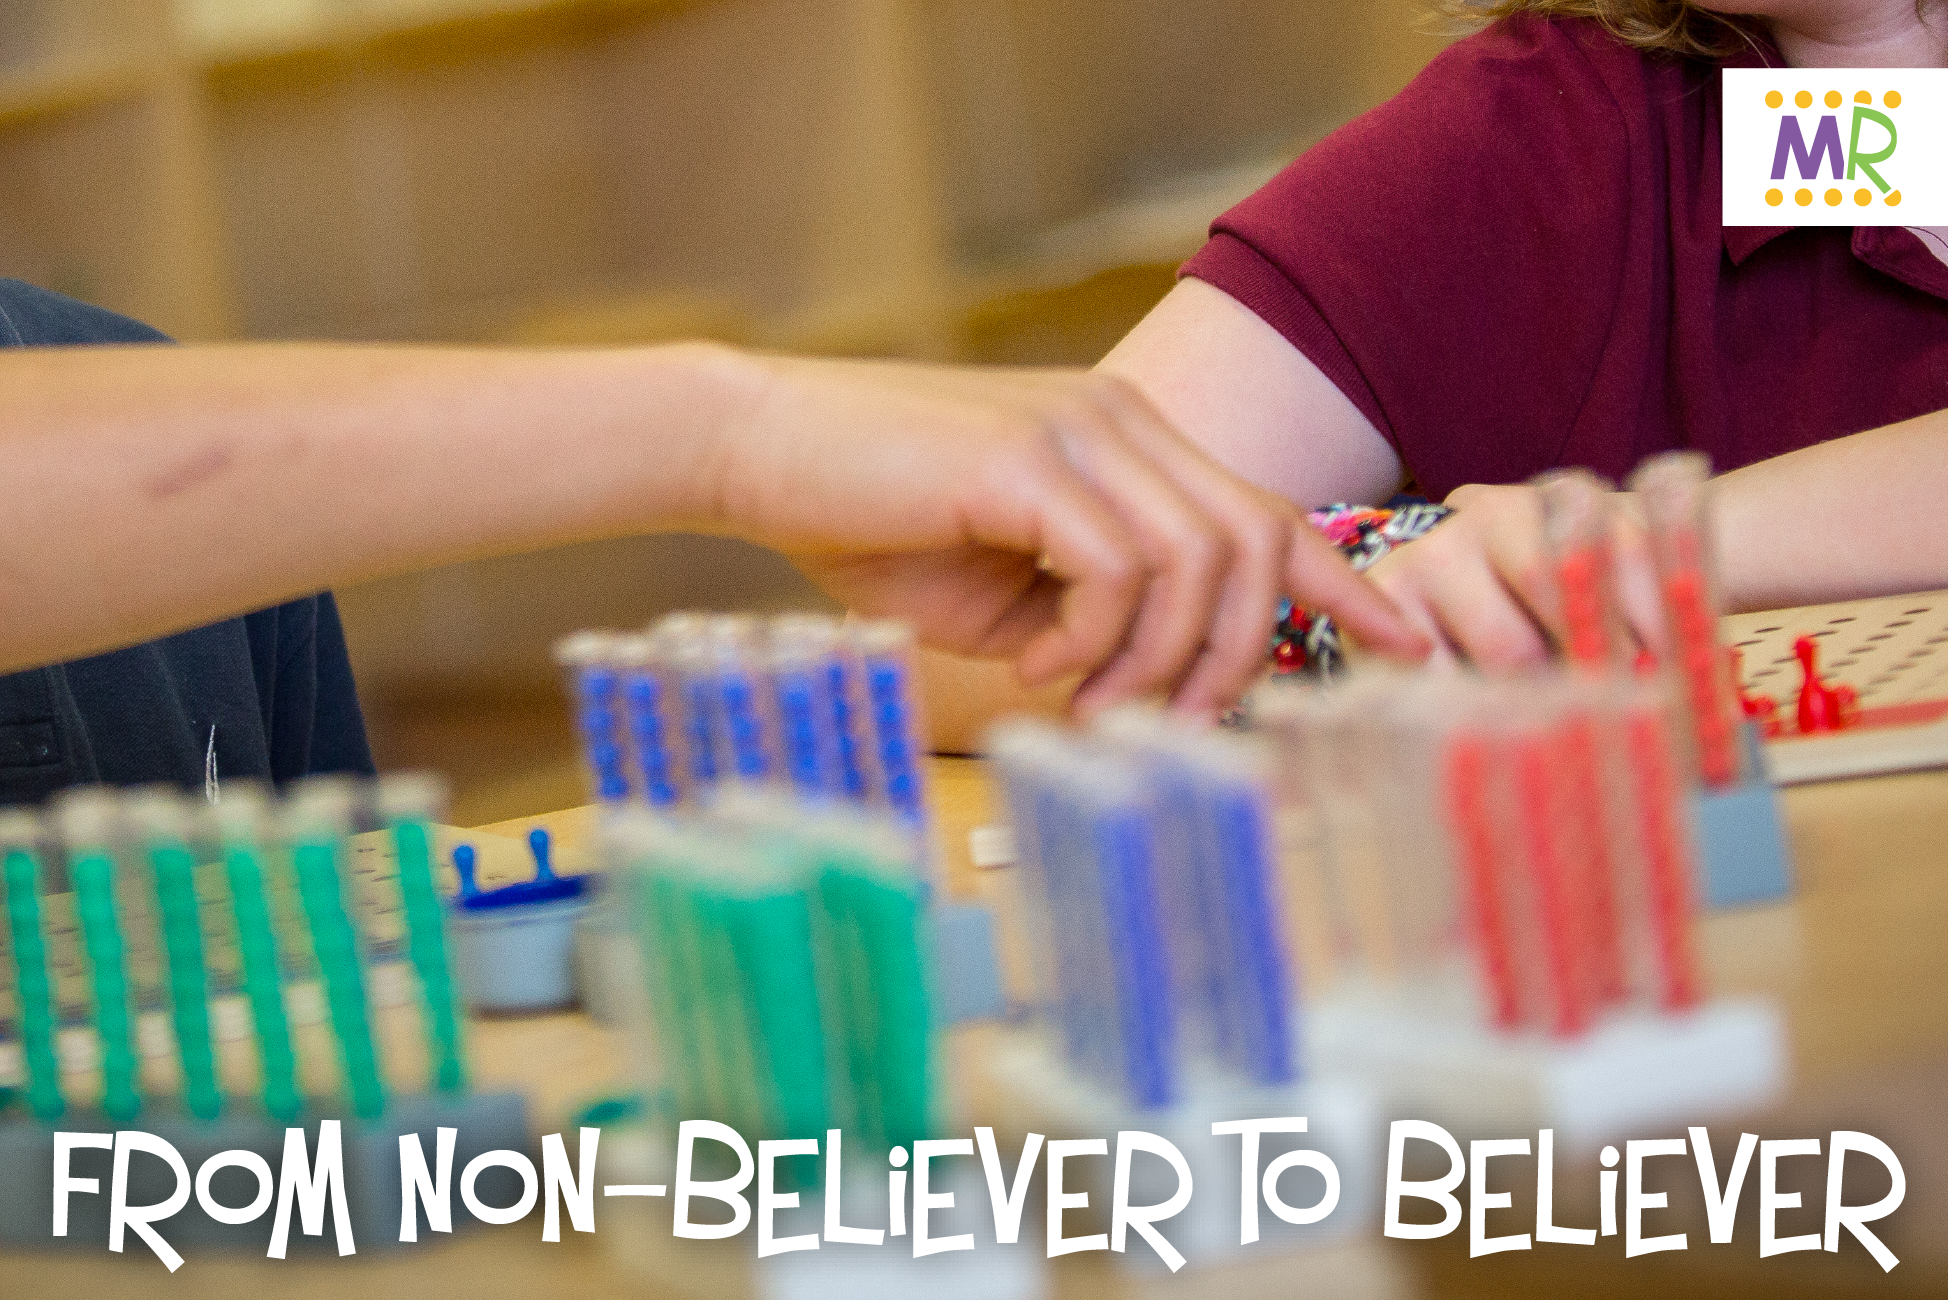 From Non-believer to Believer - Montessori Rocks!